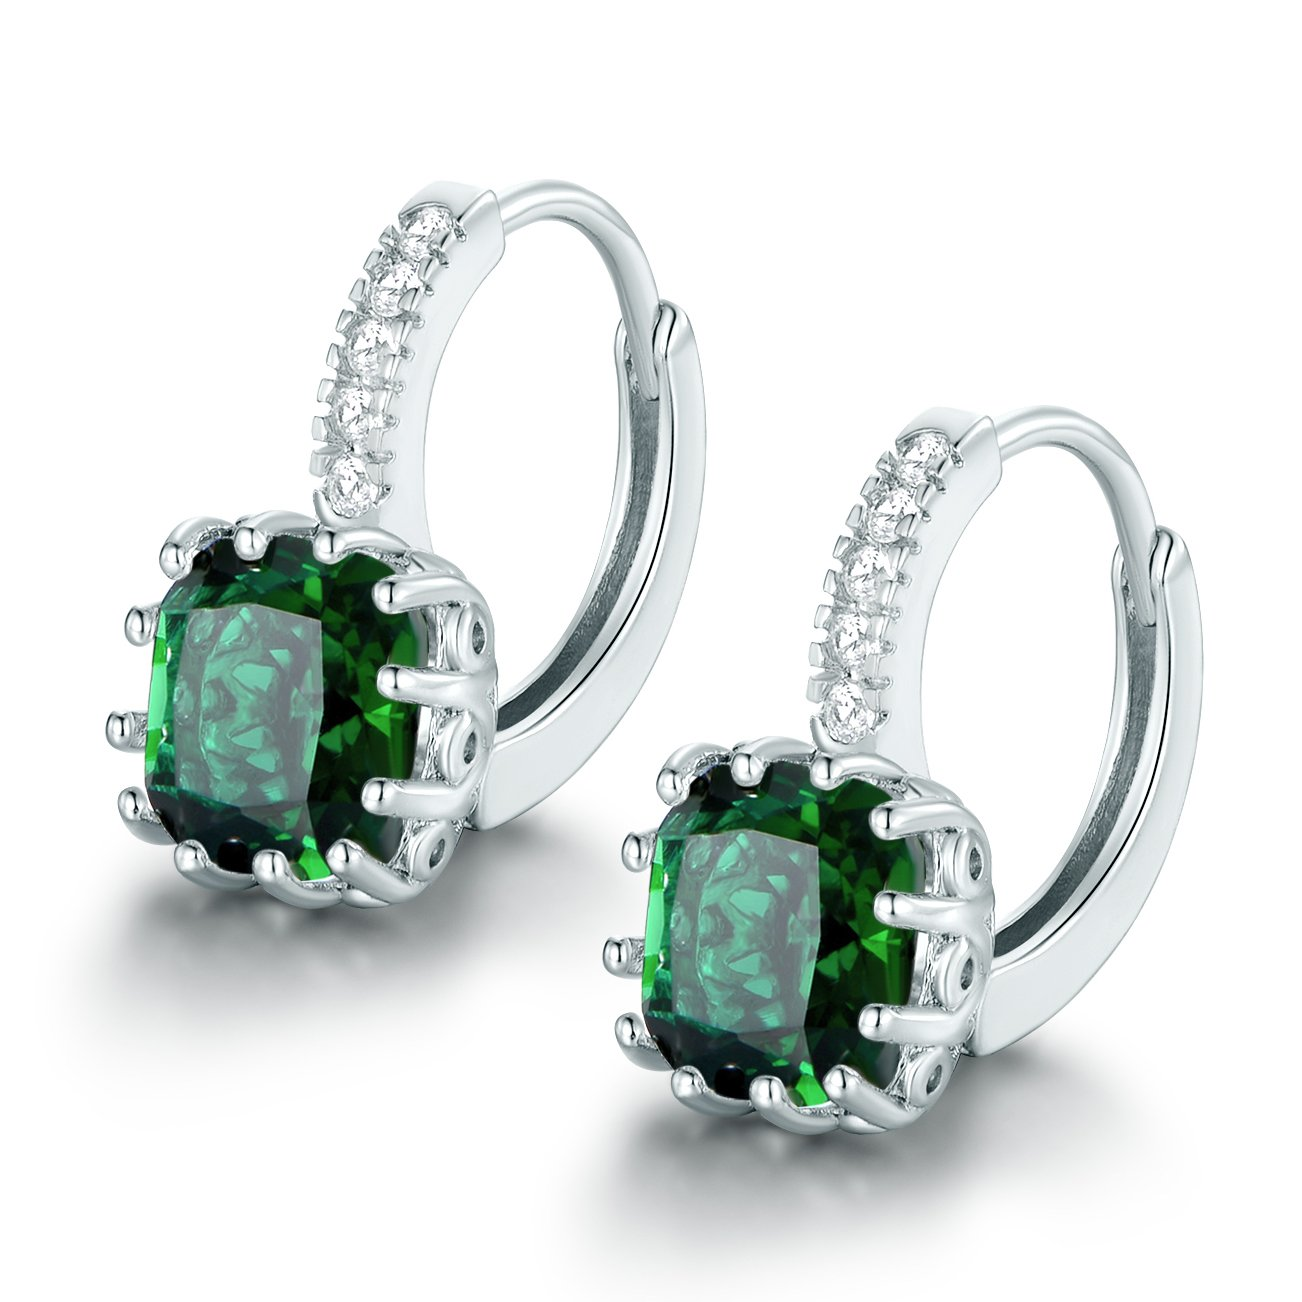 e603824e7 Details about 925 Sterling Silver Princess Cut Emerald Green Crystal  Rhinestone Drop Earrings